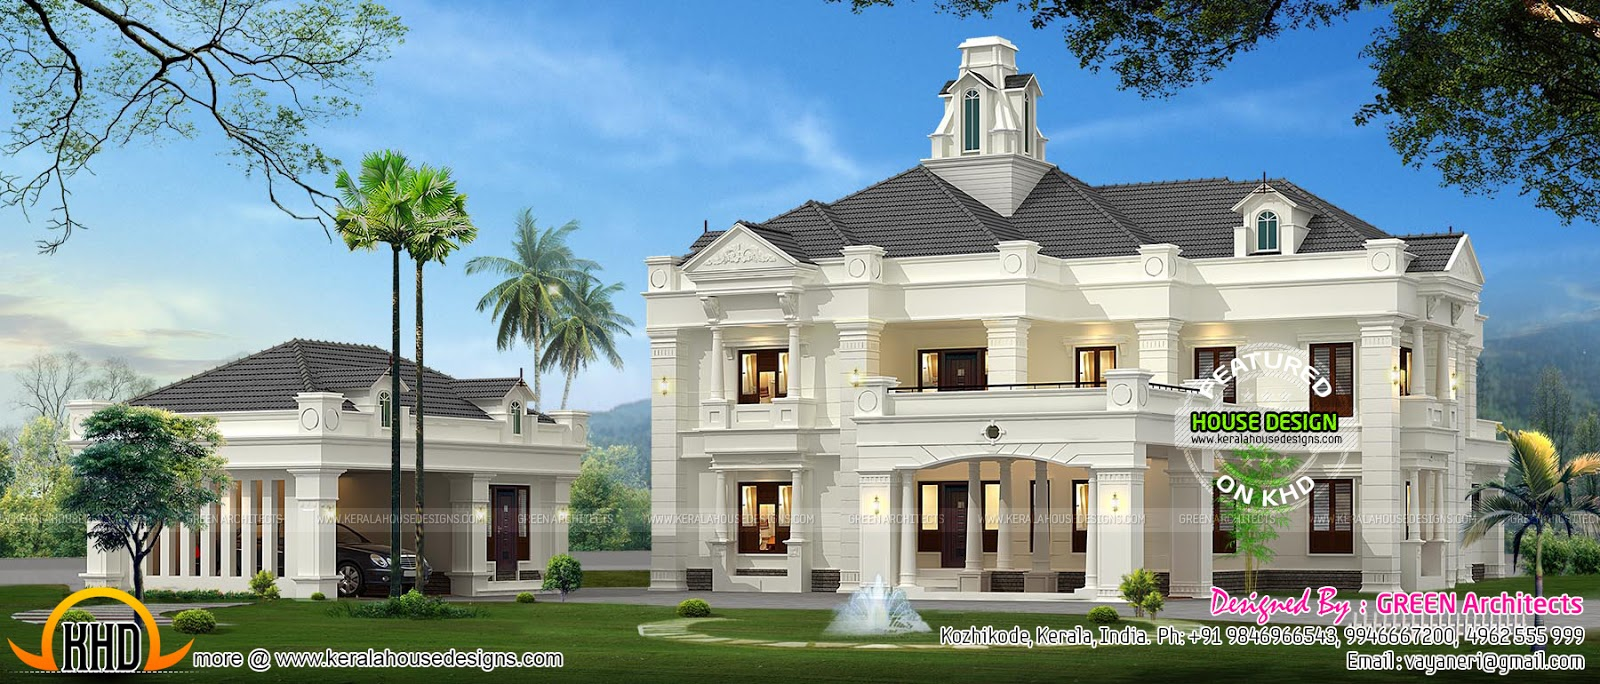 Colonial style indian house kerala home design and floor for Colonial style home design in kerala